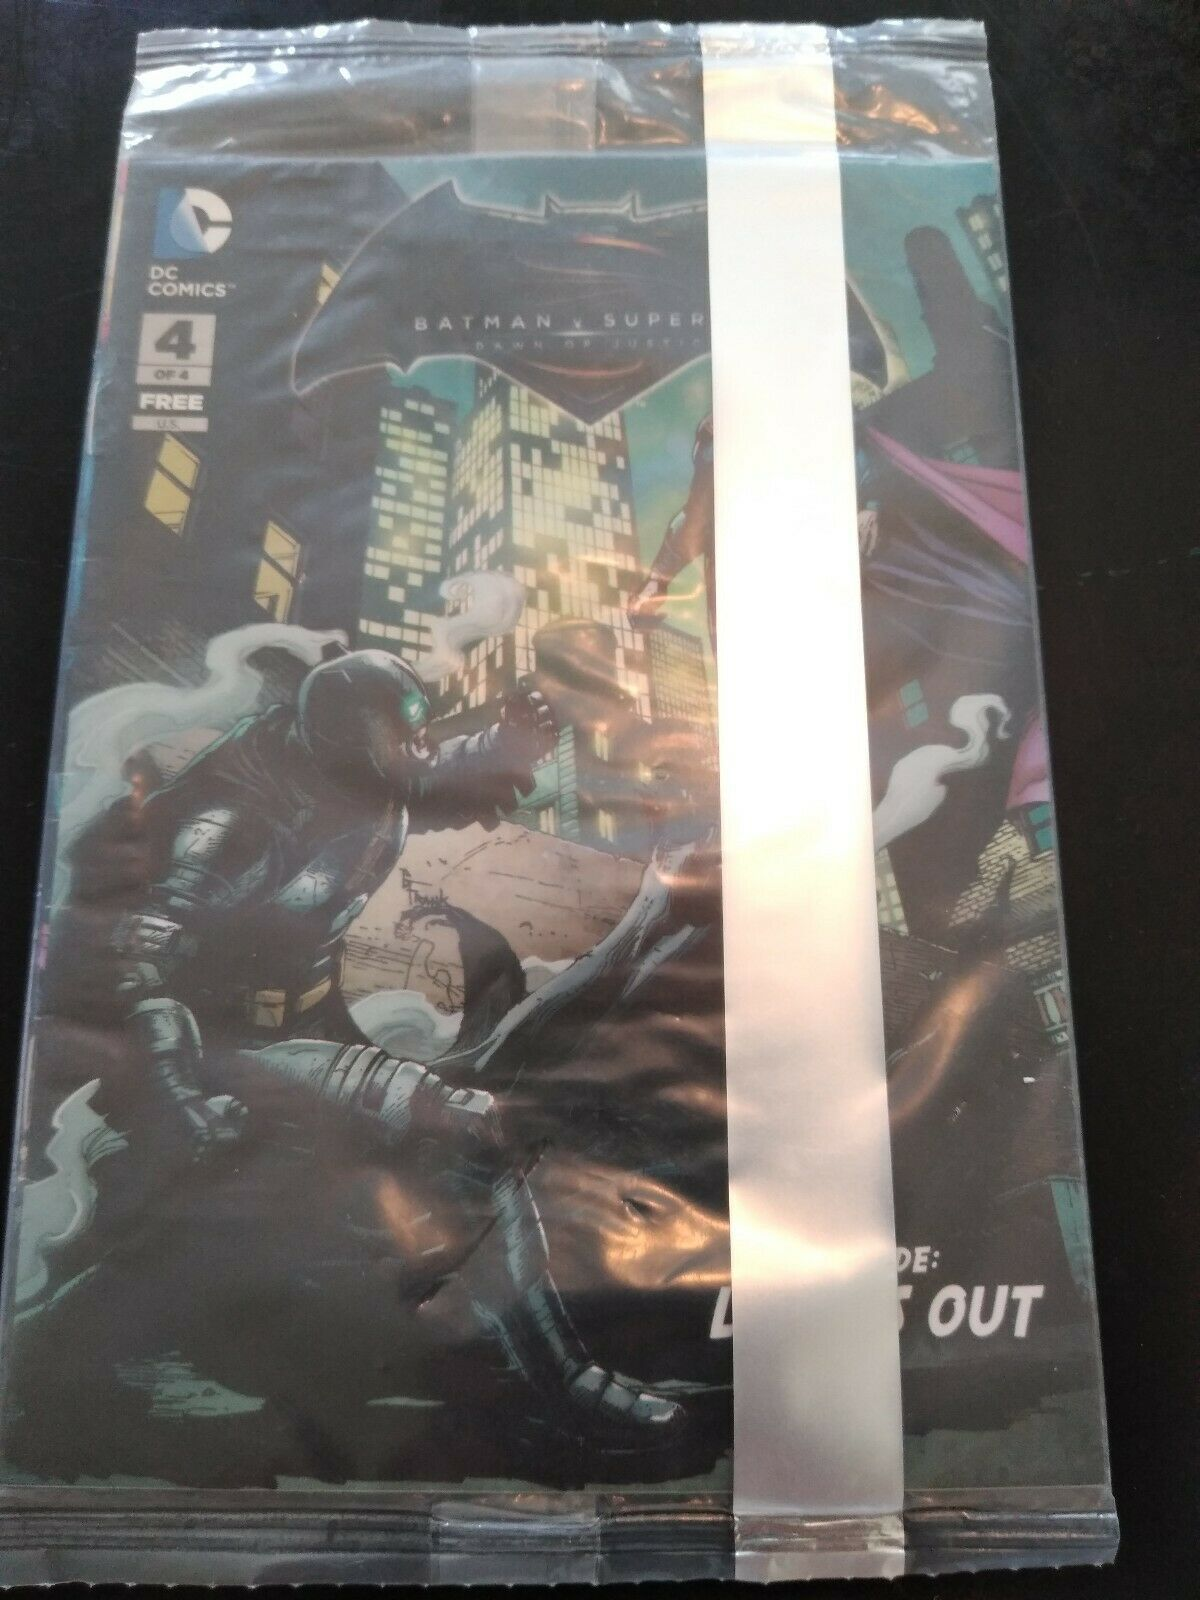 DC Comics Batman v Superman Dawn of Justice Comic Book 4 of 4 (Premiere Edition)